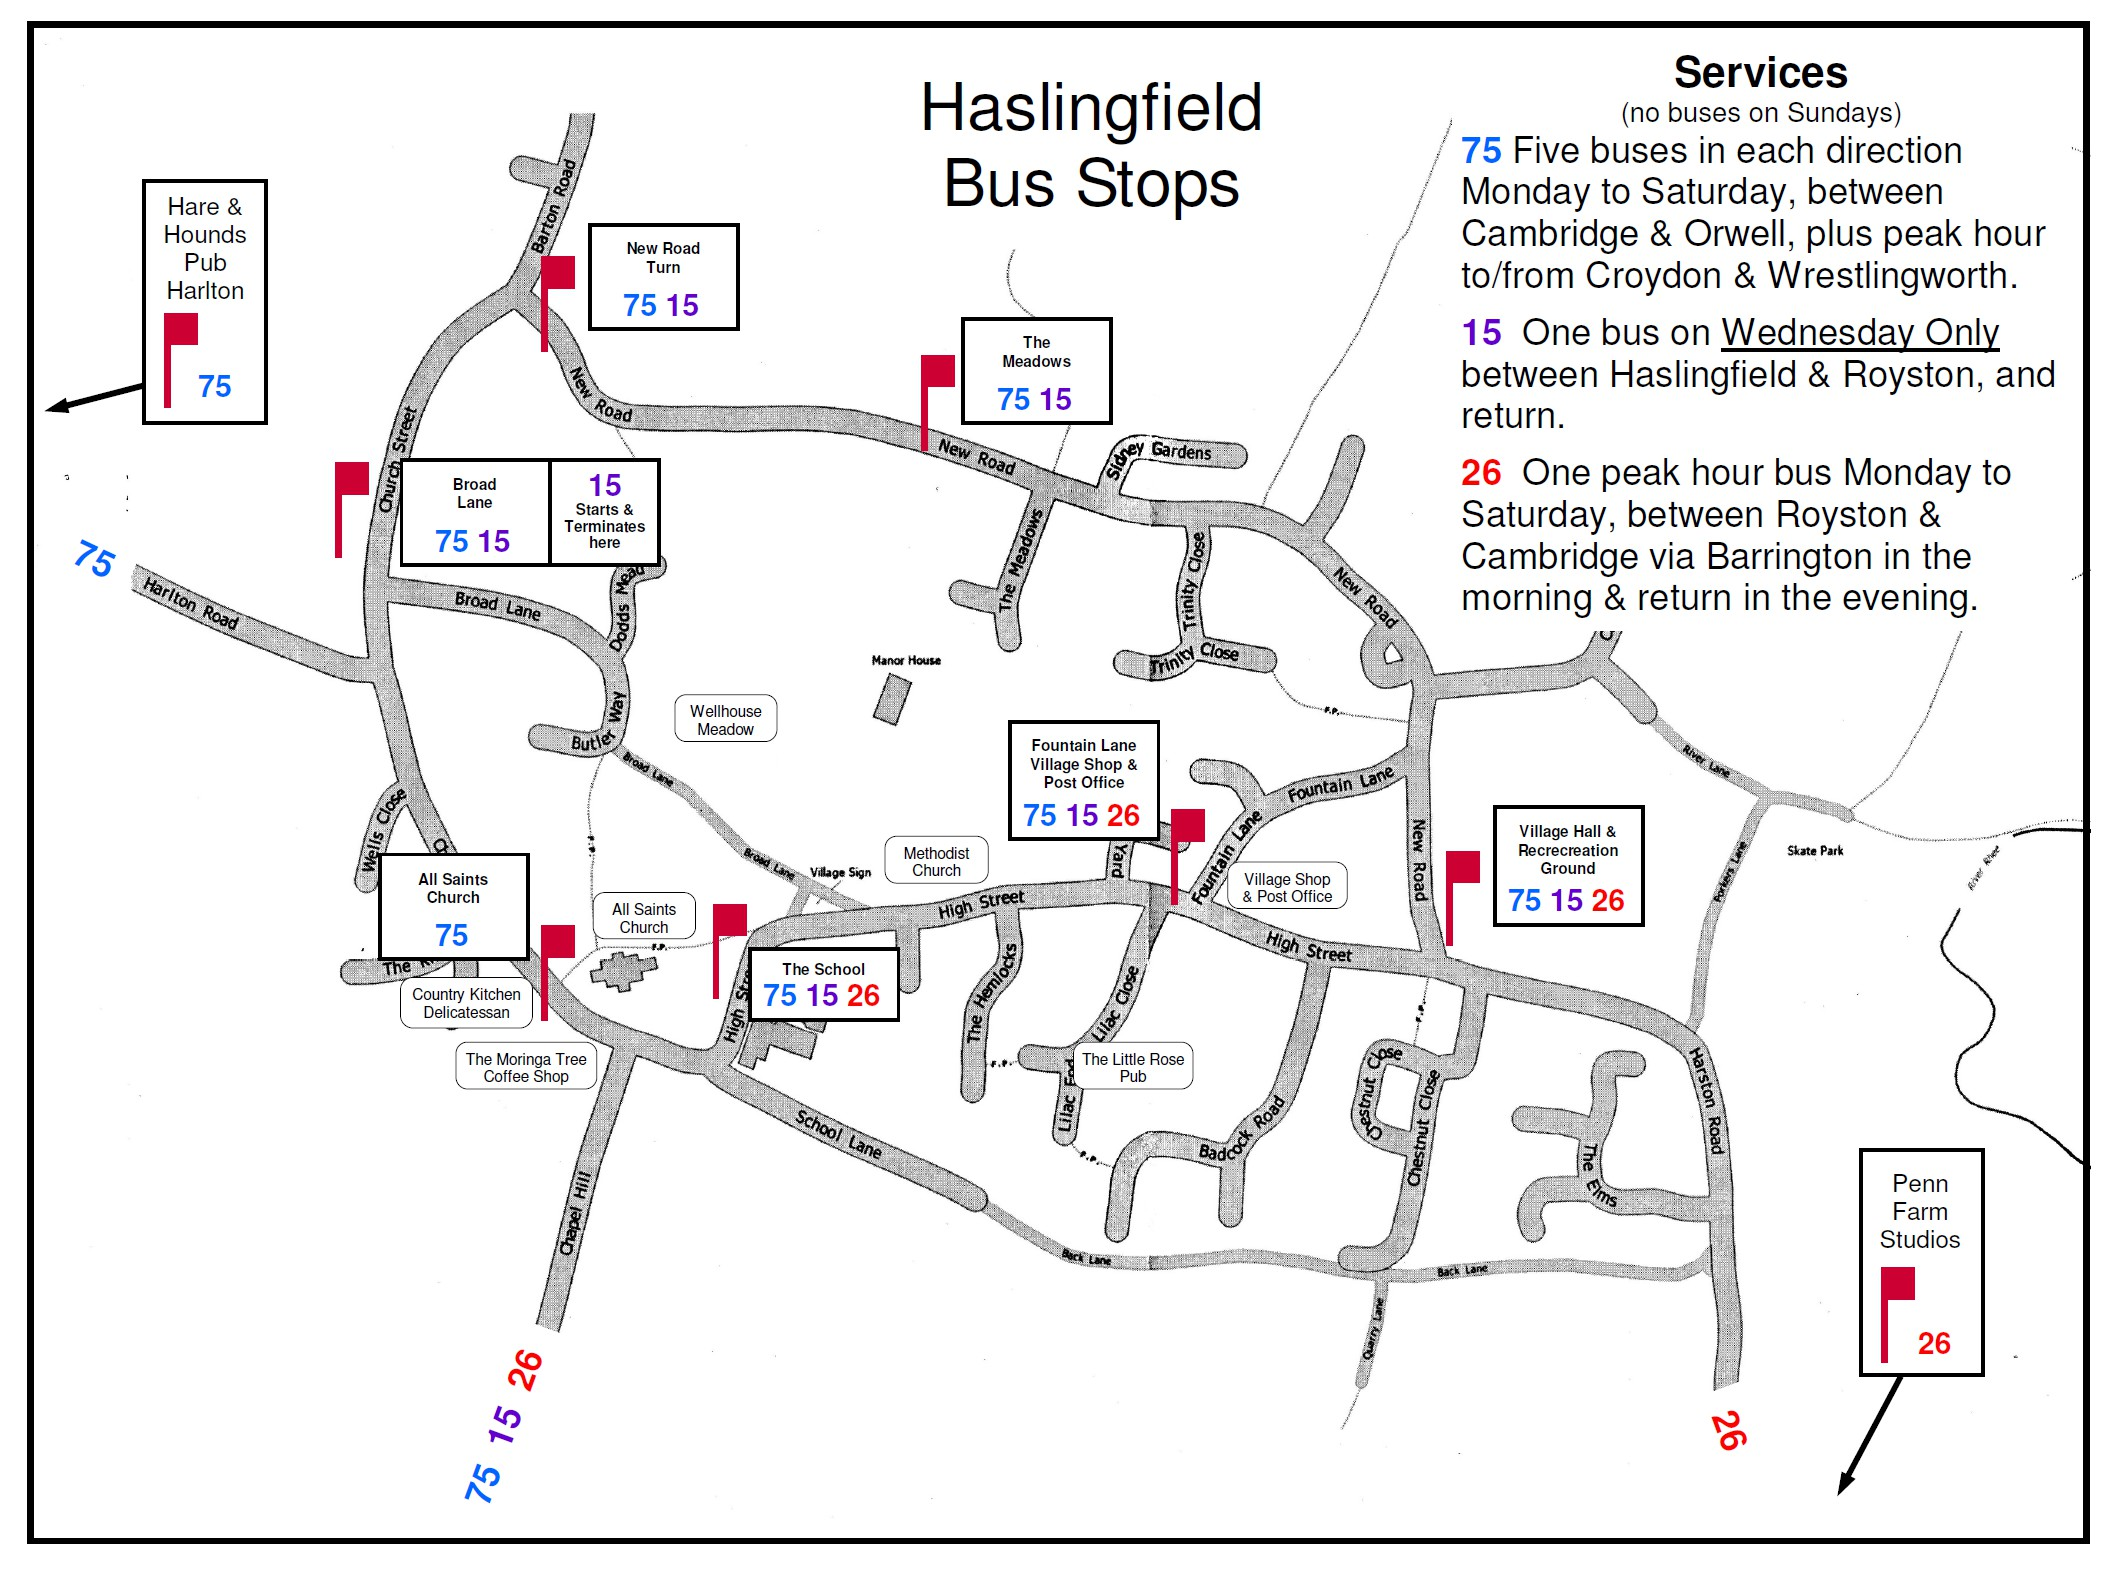 HaslingfieldVillagecouk Travel Transport